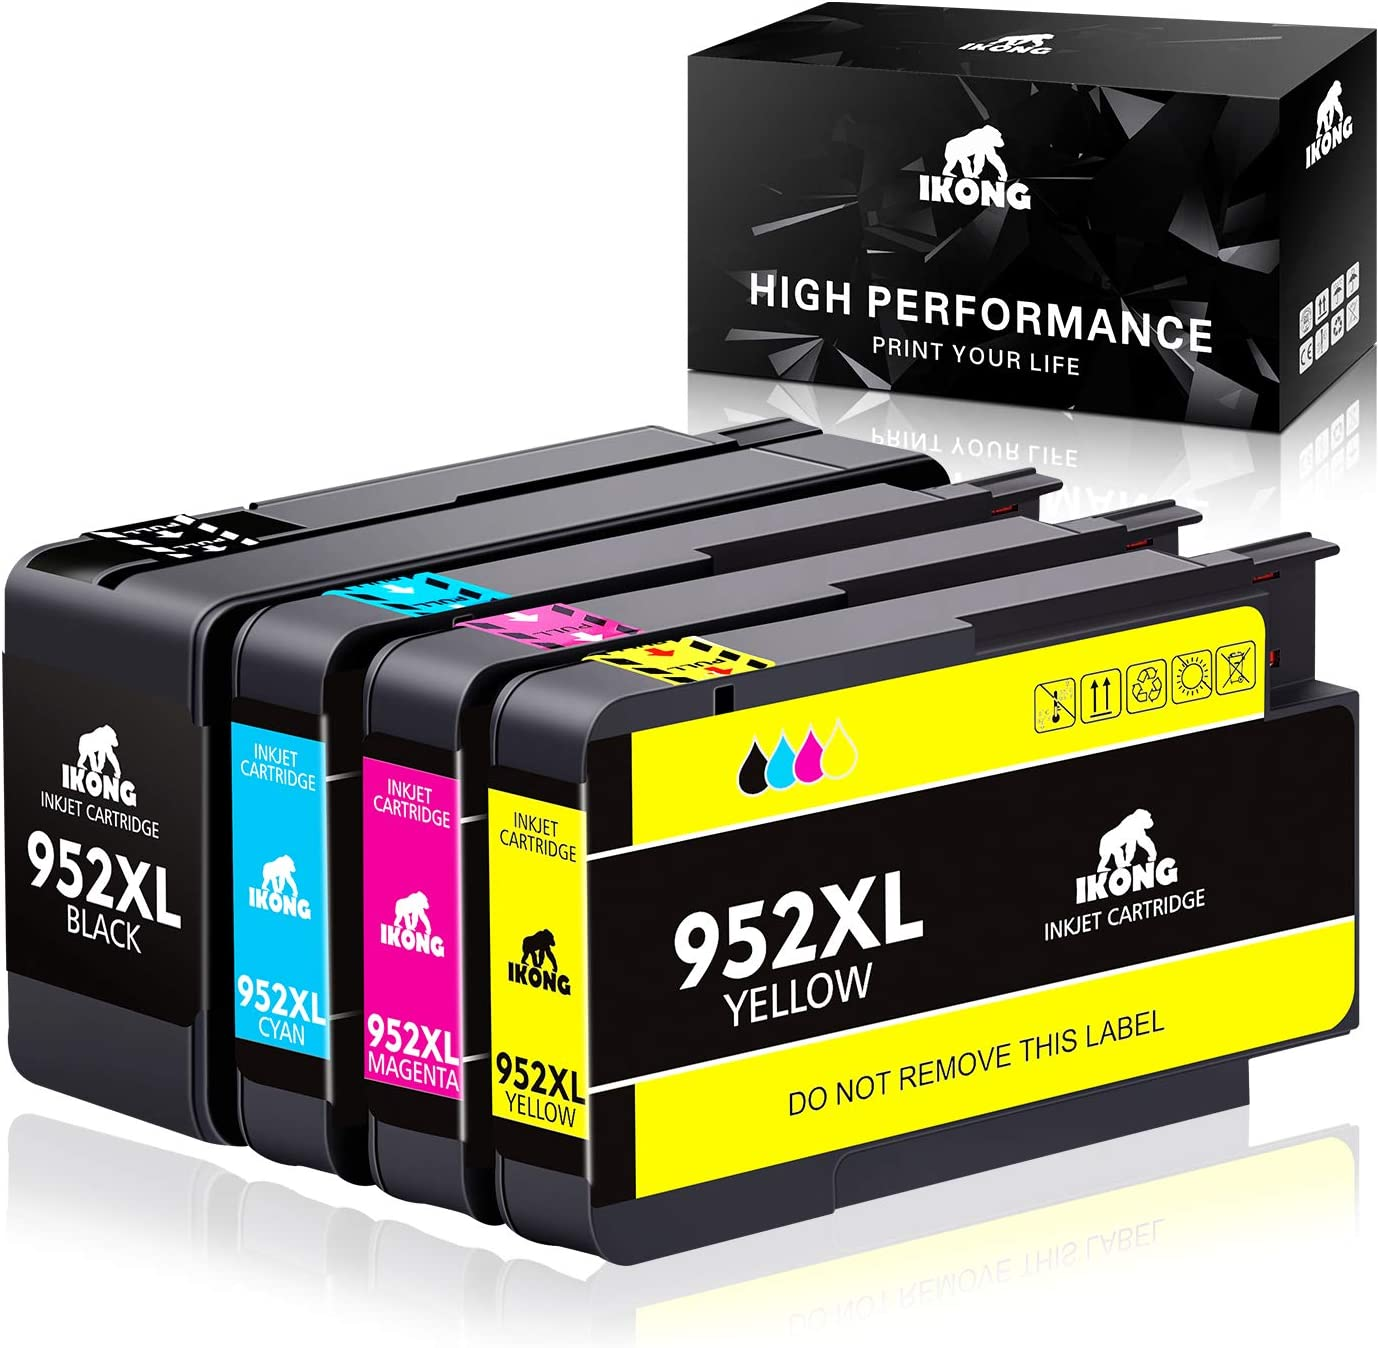 IKONG Compatible Ink Cartridge Replacement for HP 952 XL 952XL Combo Pack Use with OfficeJet Pro 8710 8720 8740 8730 7740 8210 8715 8216 8725 8702 Printer (4-Pack)